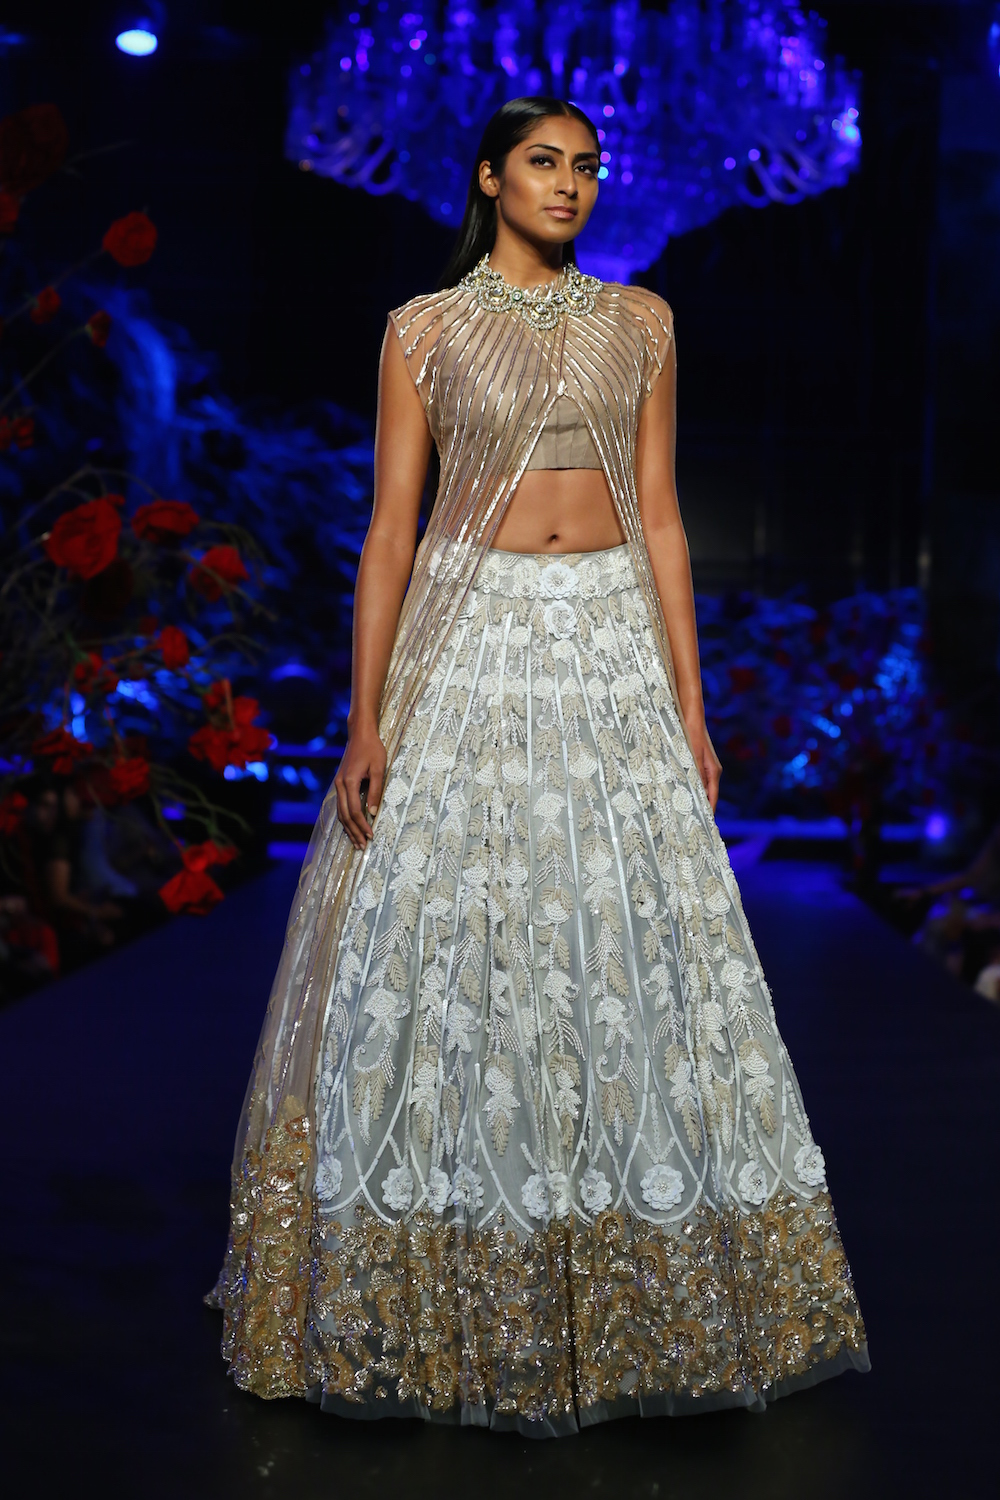 manish malhotra india amazon week couture lehenga crop skirt sheer heavy jacket silver pink embroidered bridal indian gown dress floral